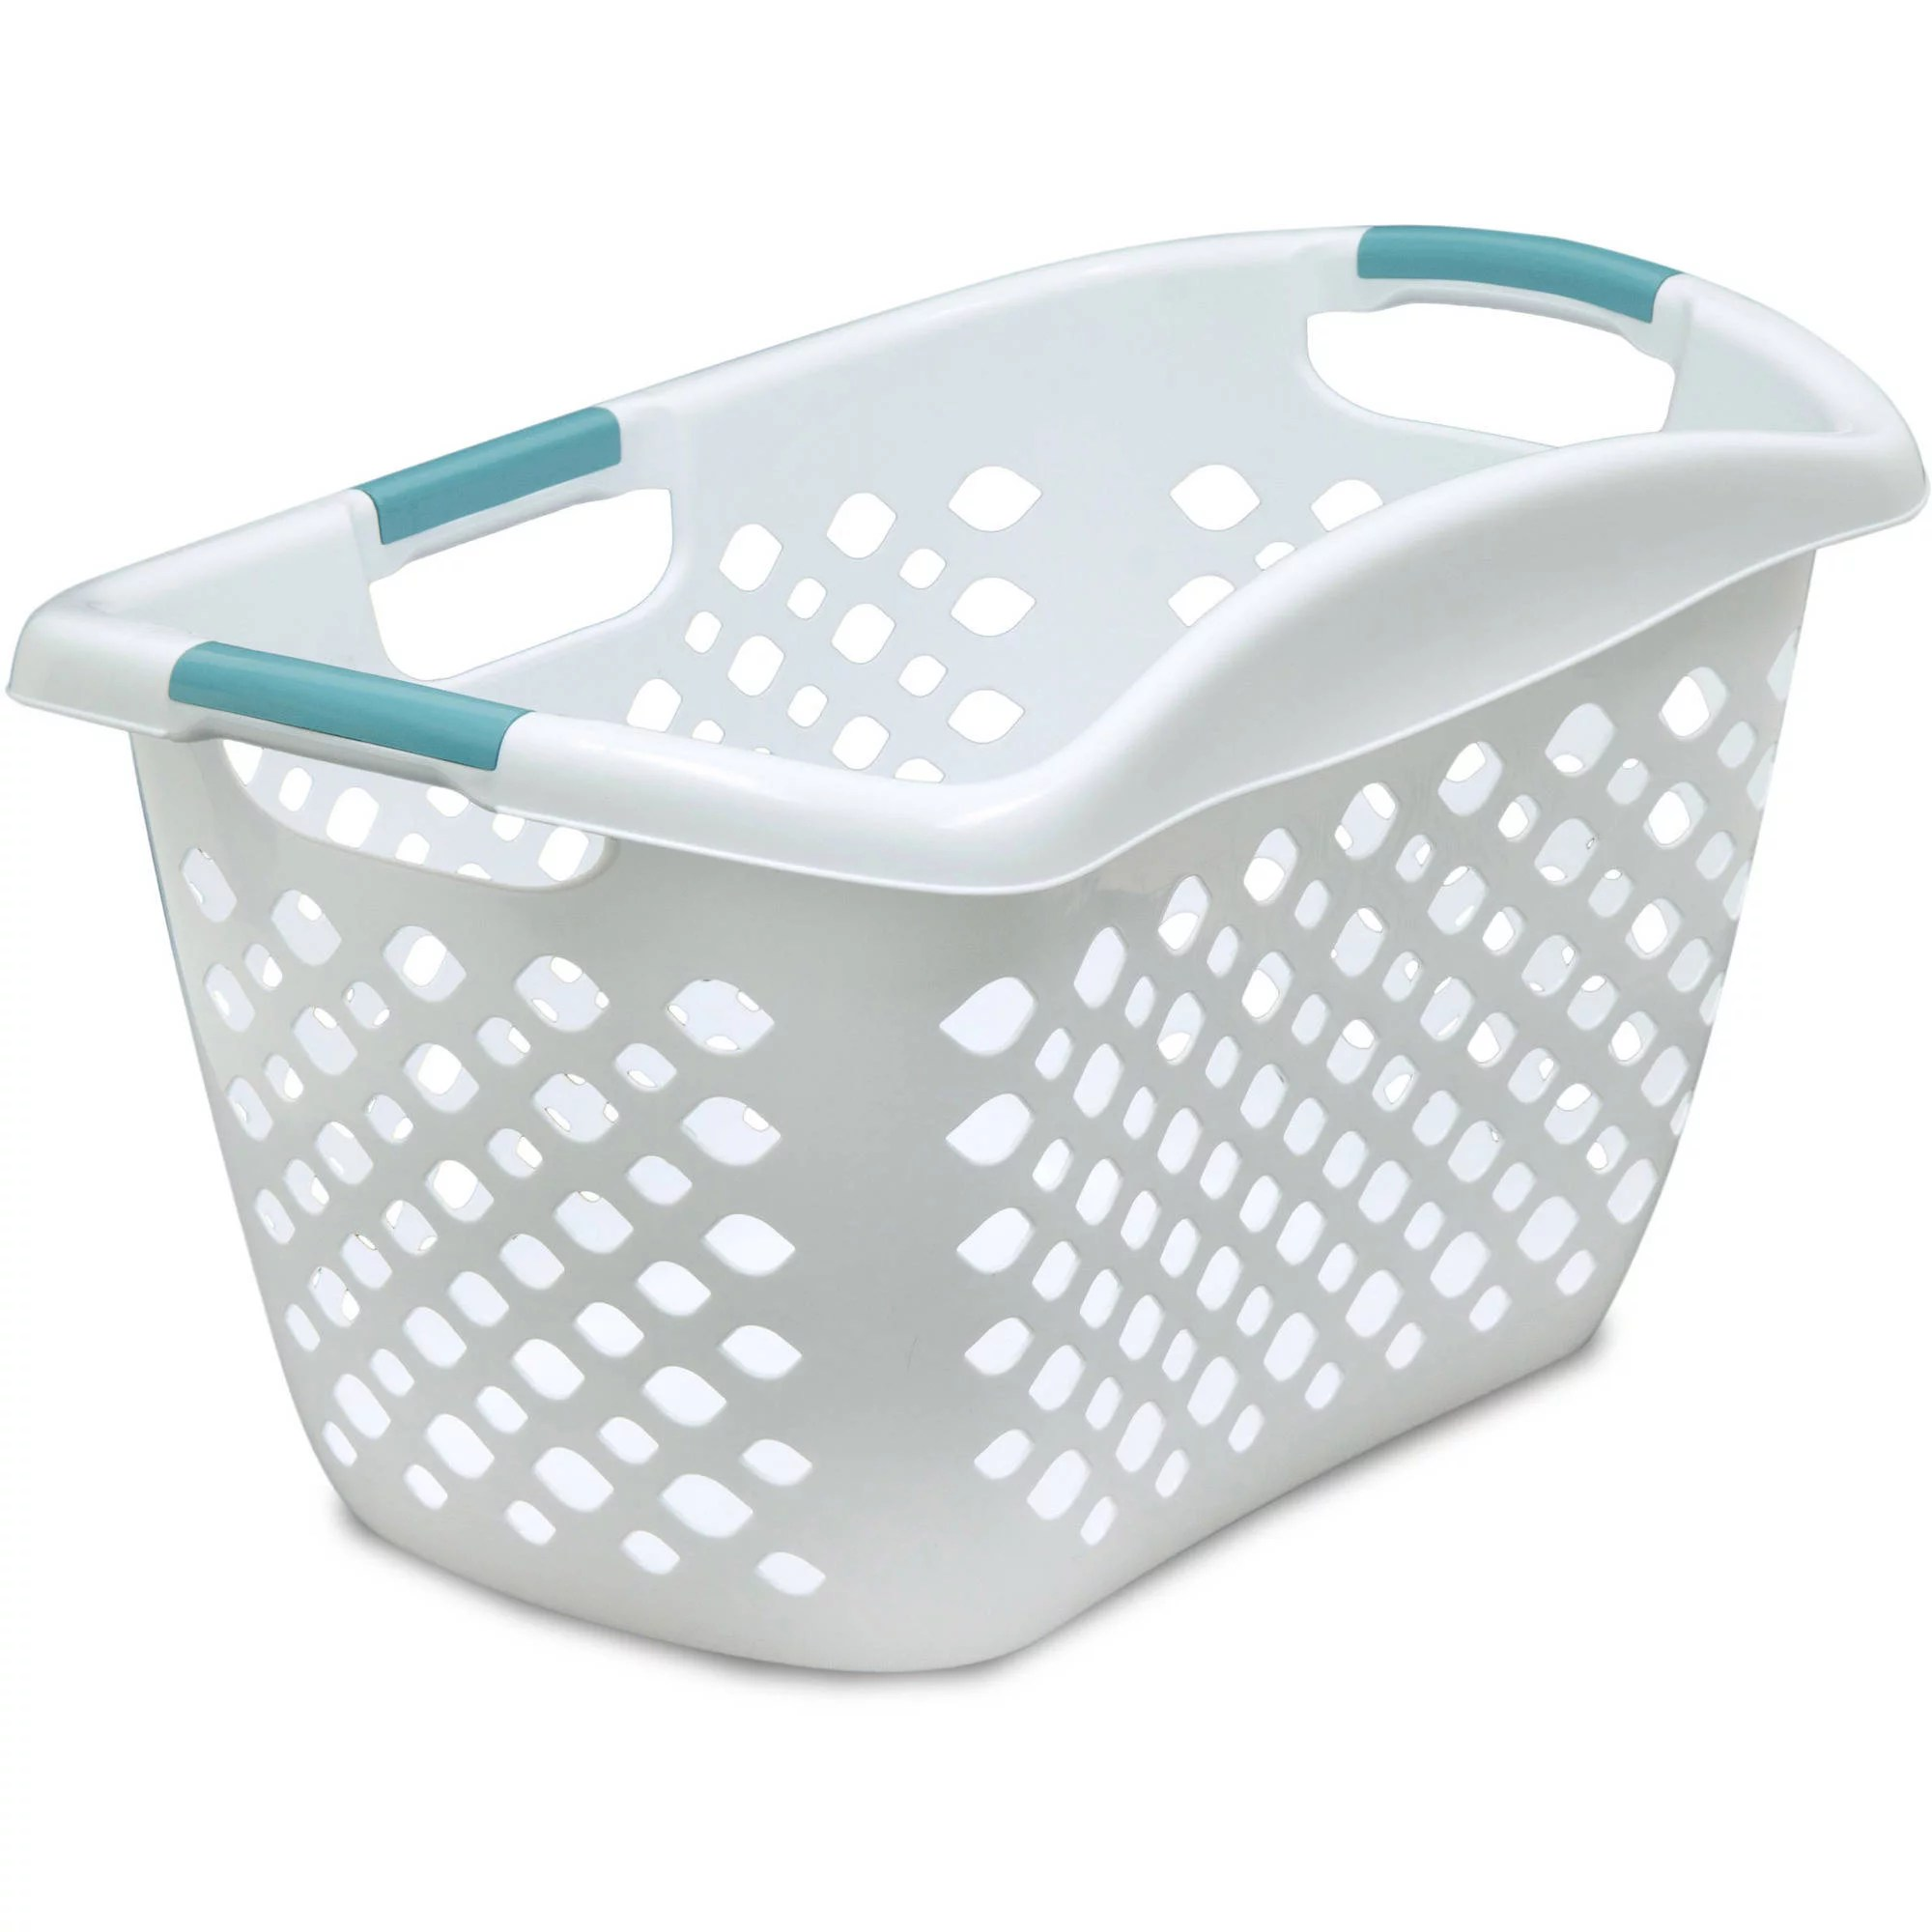 3 Basket Laundry Hamper Sterilite 2 Bushel Ultra Laundry Basket Multiple Colors